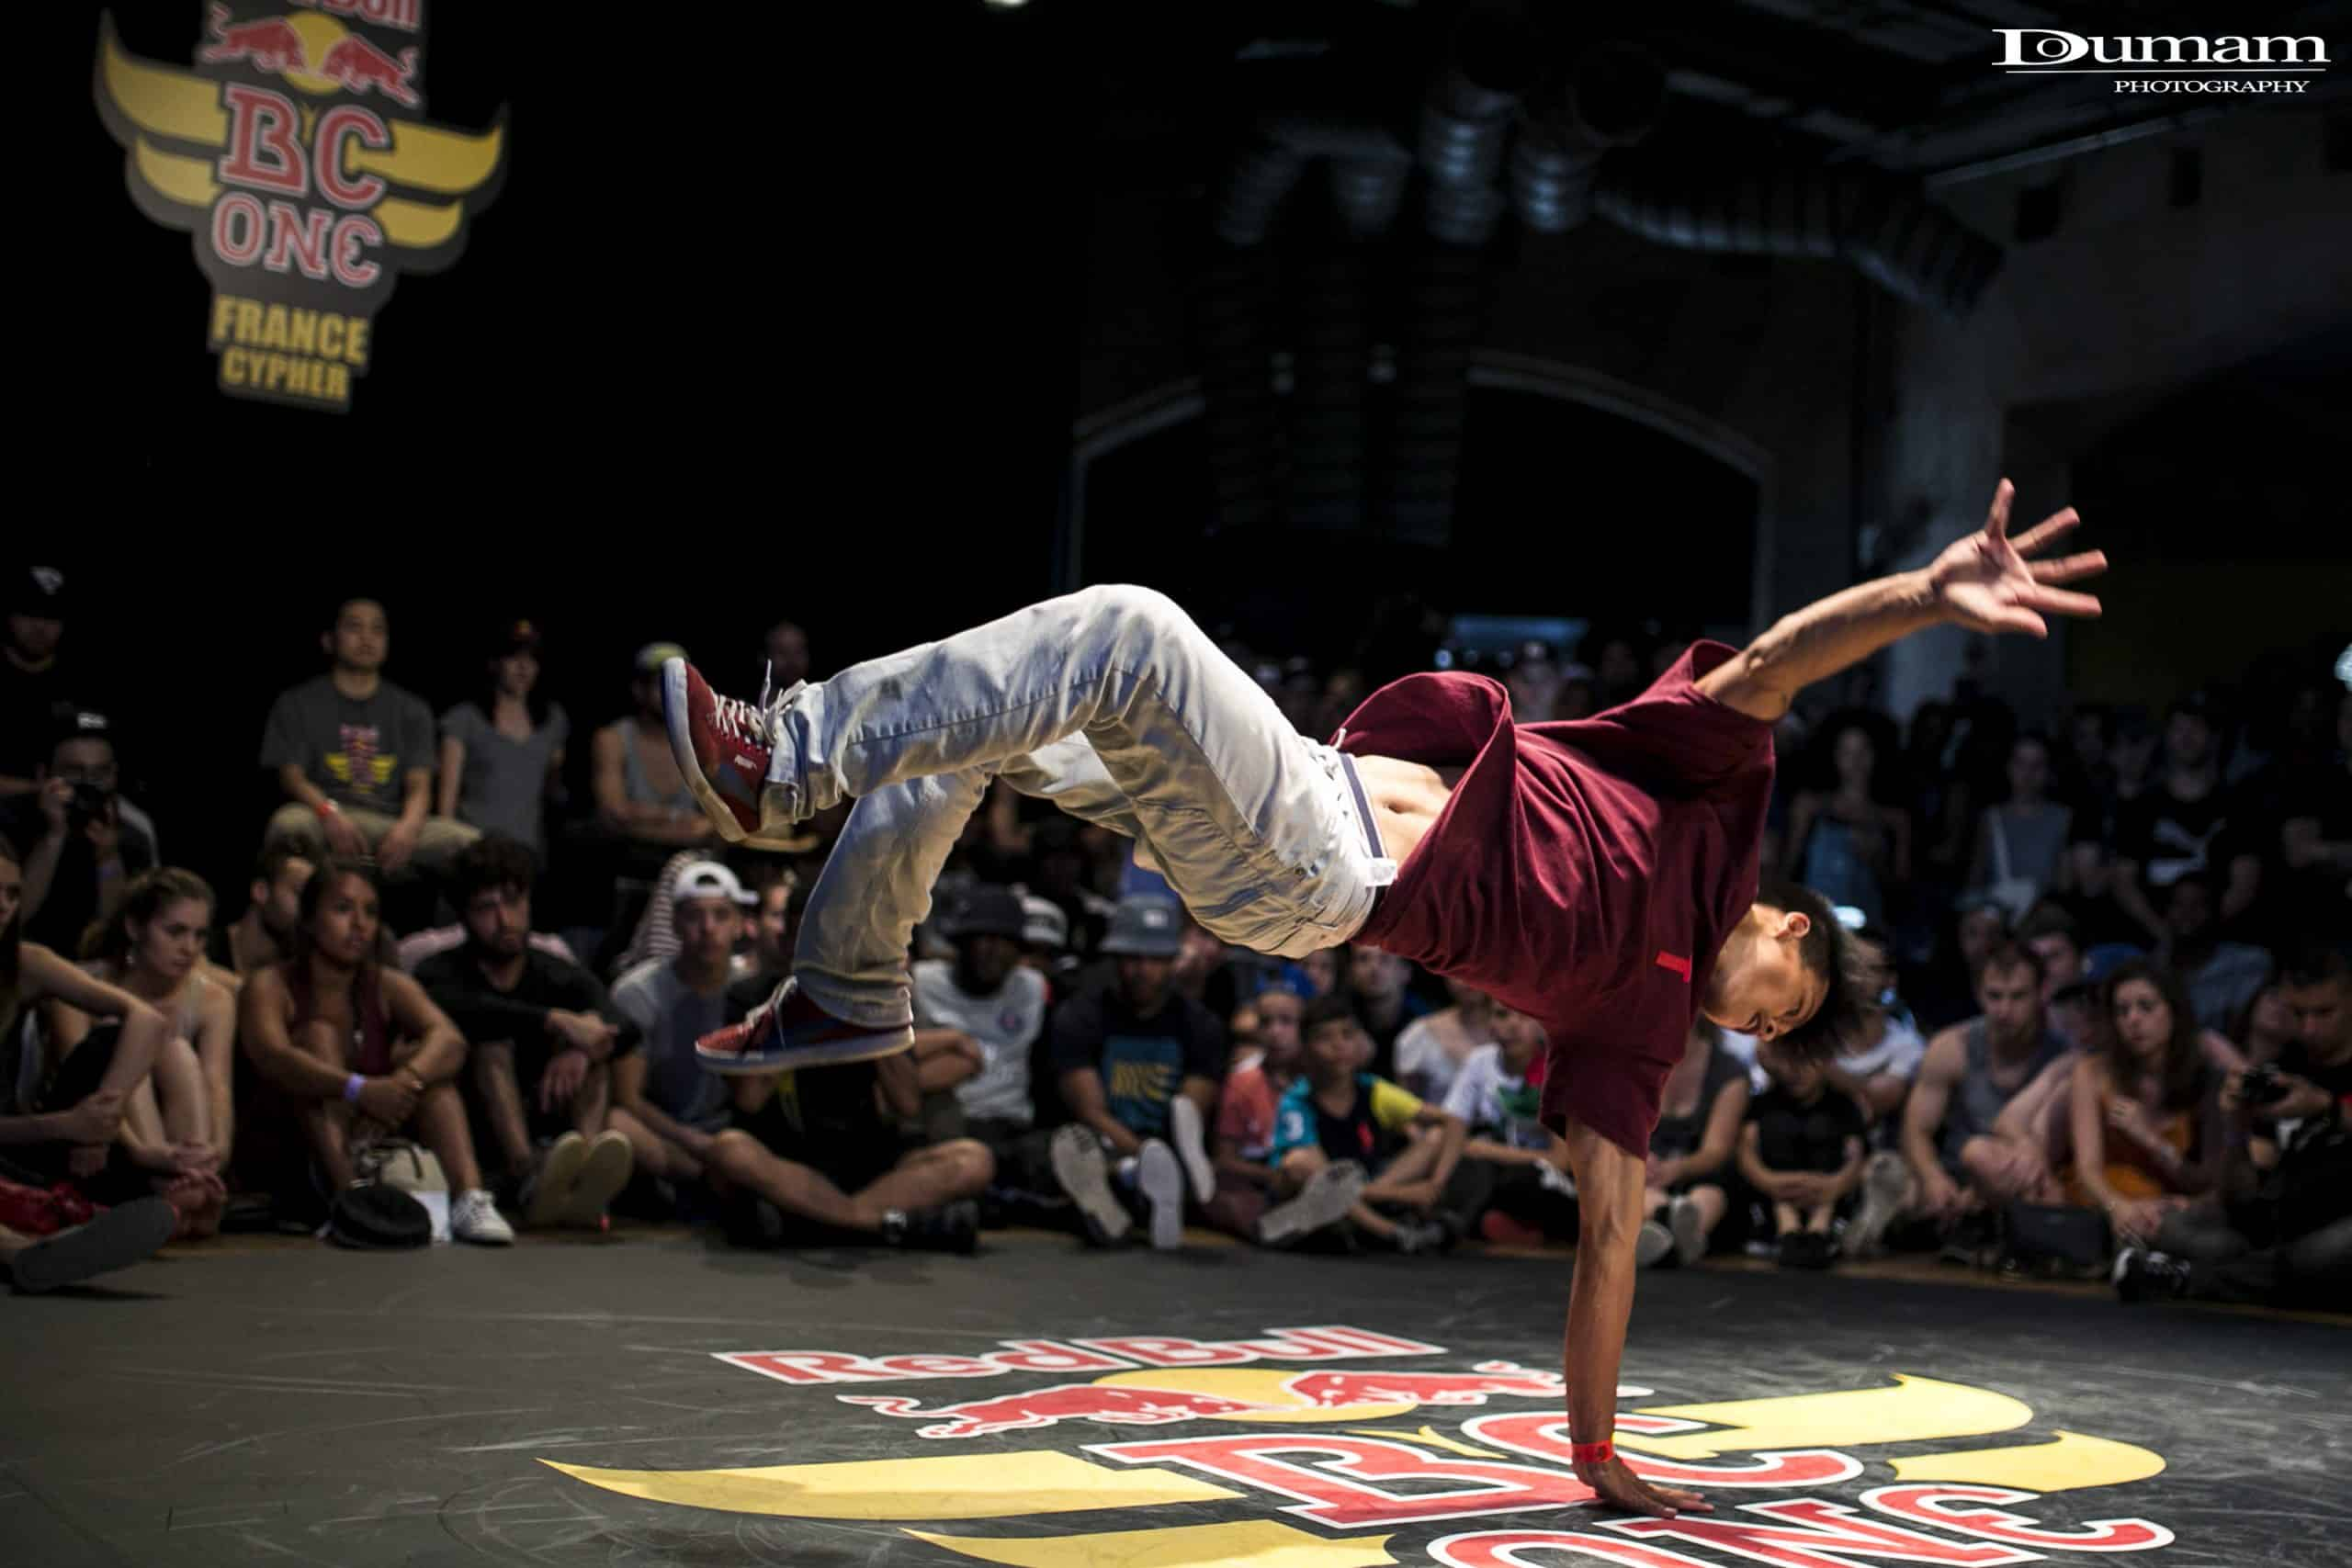 image bboy willy winner redbull bc one cypher france 2016 doumam